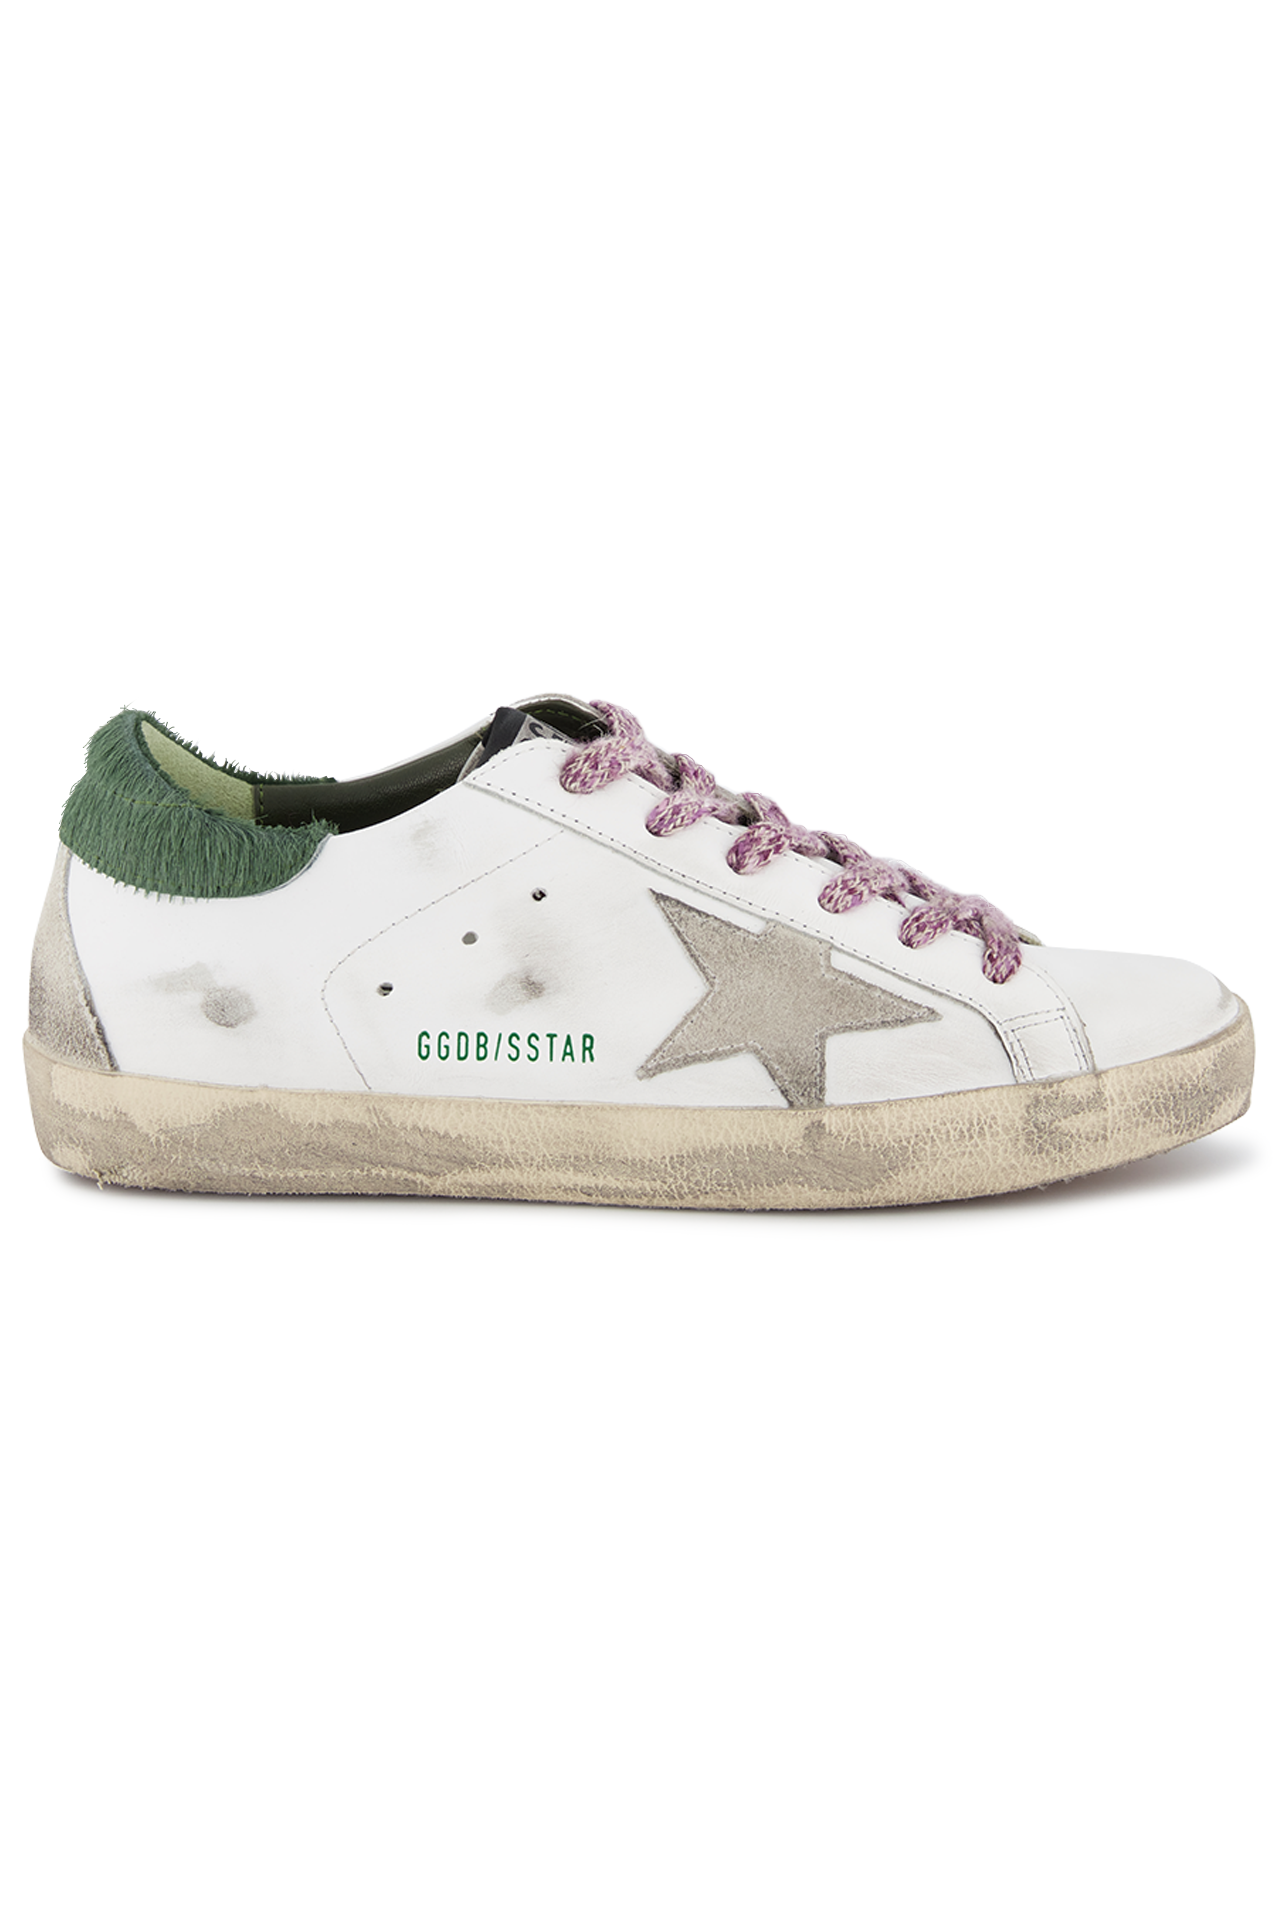 Side view image of Golden Goose Women's Superstar Sneaker White/Green